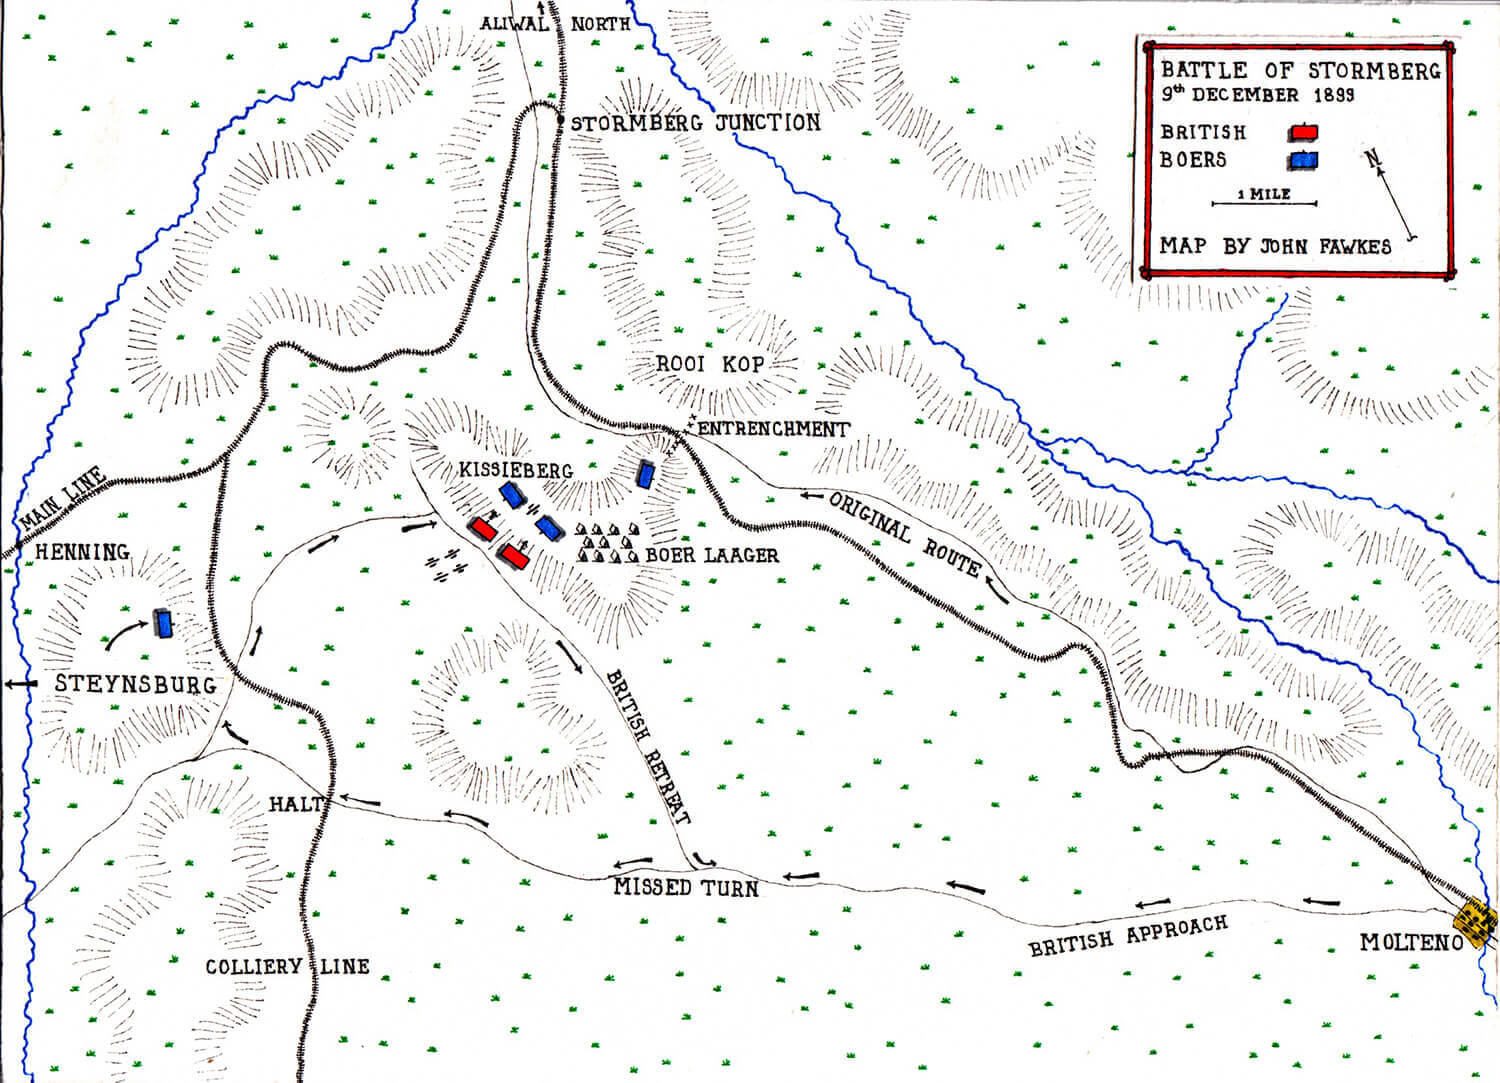 Map of the Battle of Stormberg on 9th and 10th December 1899 in the Boer War by John Fawkes